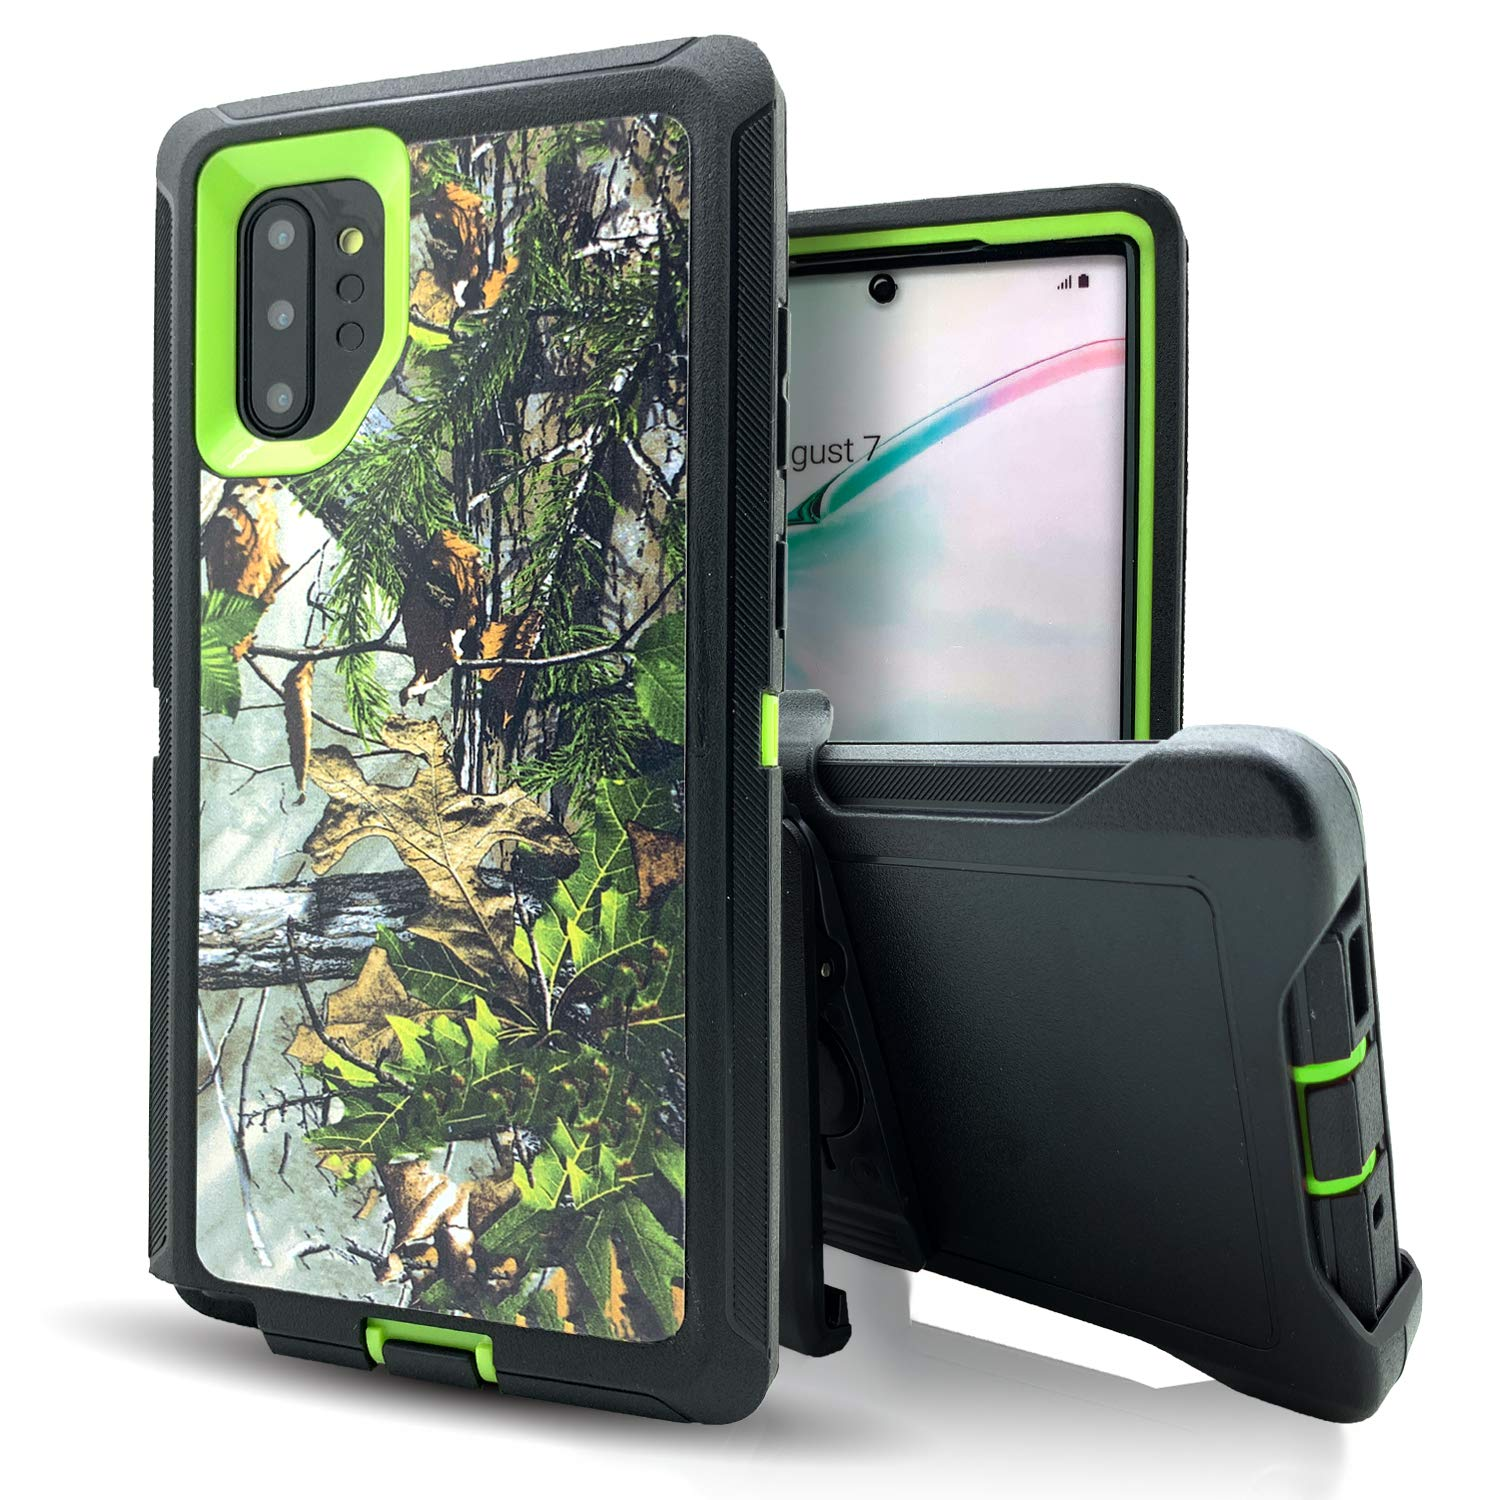 Galaxy Note 10 Case,Cases for Note 10,Vodico Heavy Duty Shockproof Protective Phone Cover with Kickstand&Belt Clip Holster Military Camo Defender High Impact Resistant TPU Bumper Case (Forest Green)